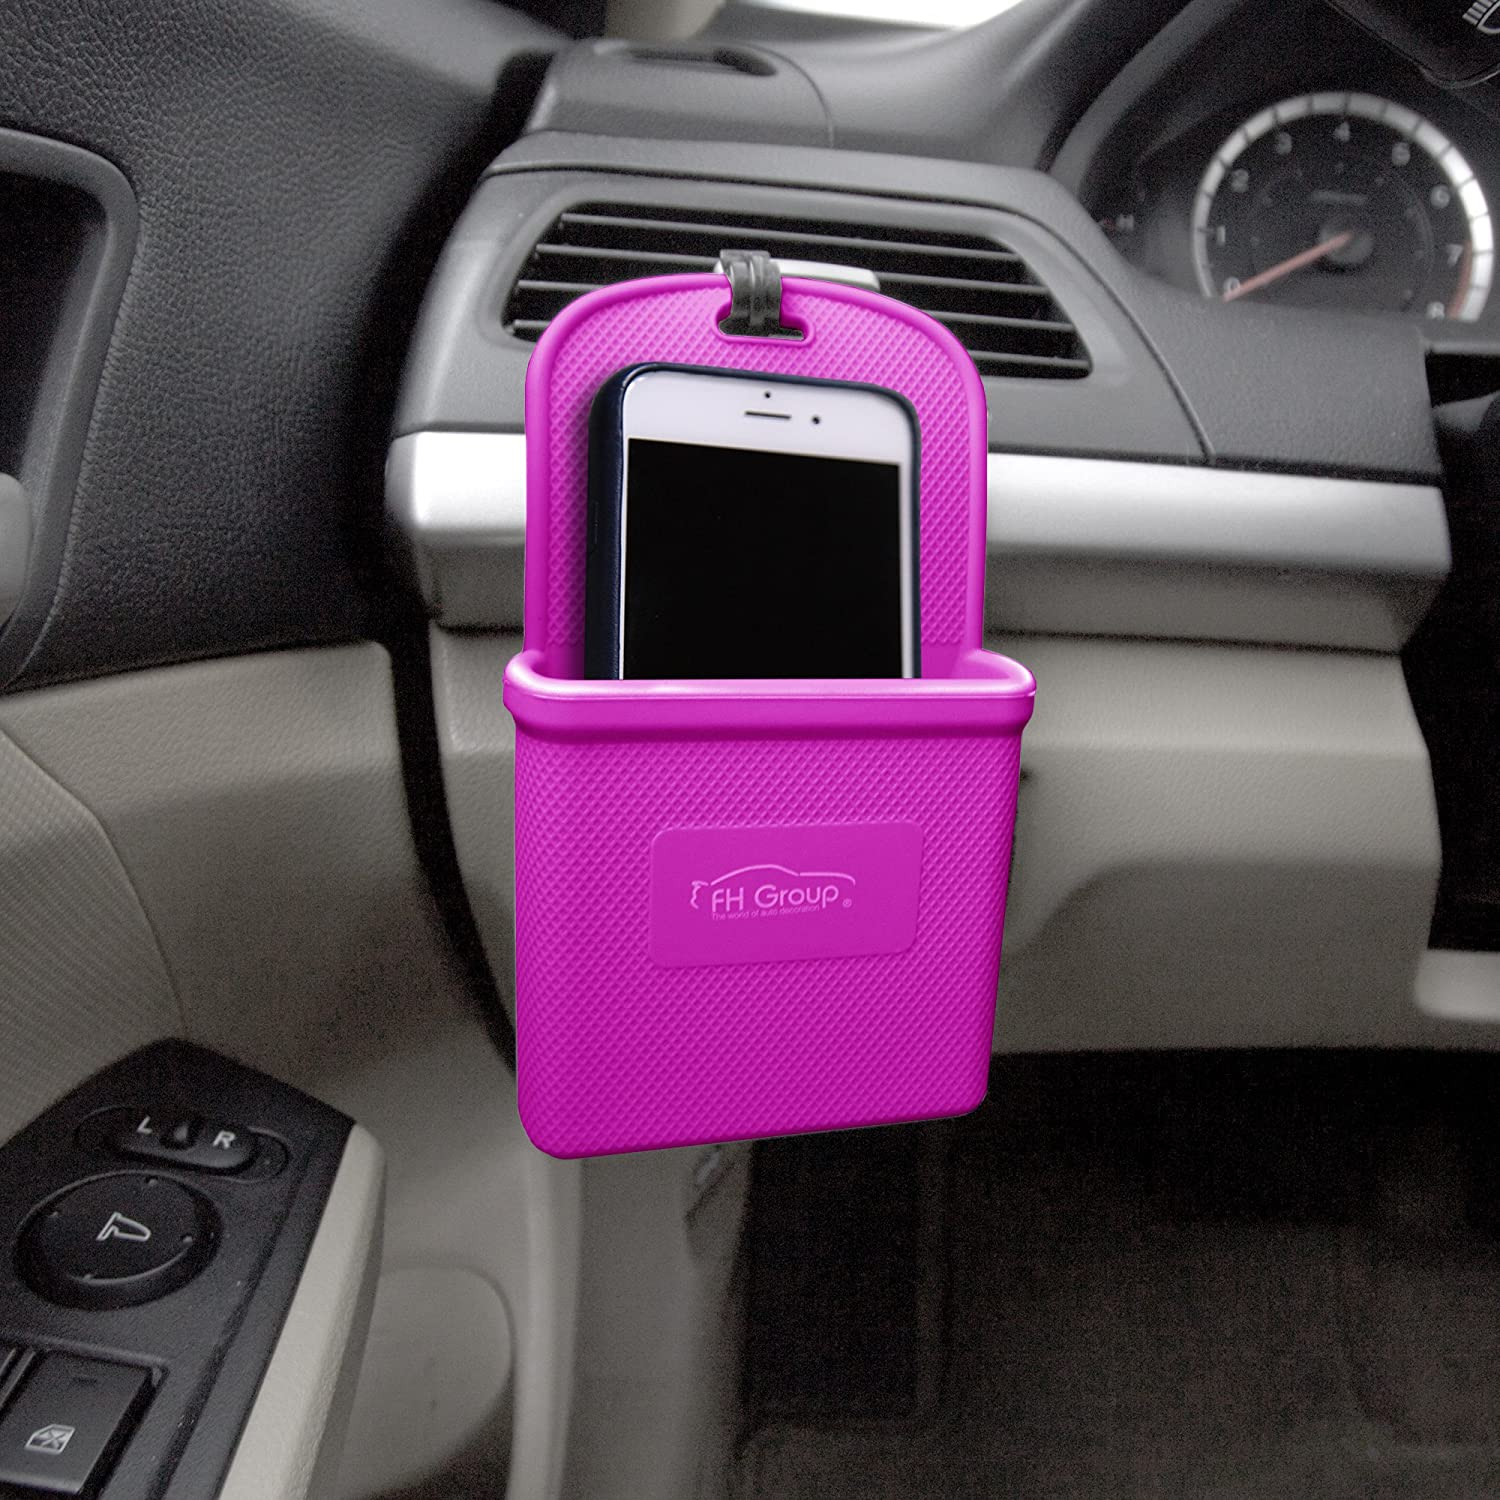 FH Group FH3022HOTPINK Hot Pink Silicone Car Vent Mounted Phone Holder (Smartphone works with IPhone Plus Galaxy Note Hot Pink Color)